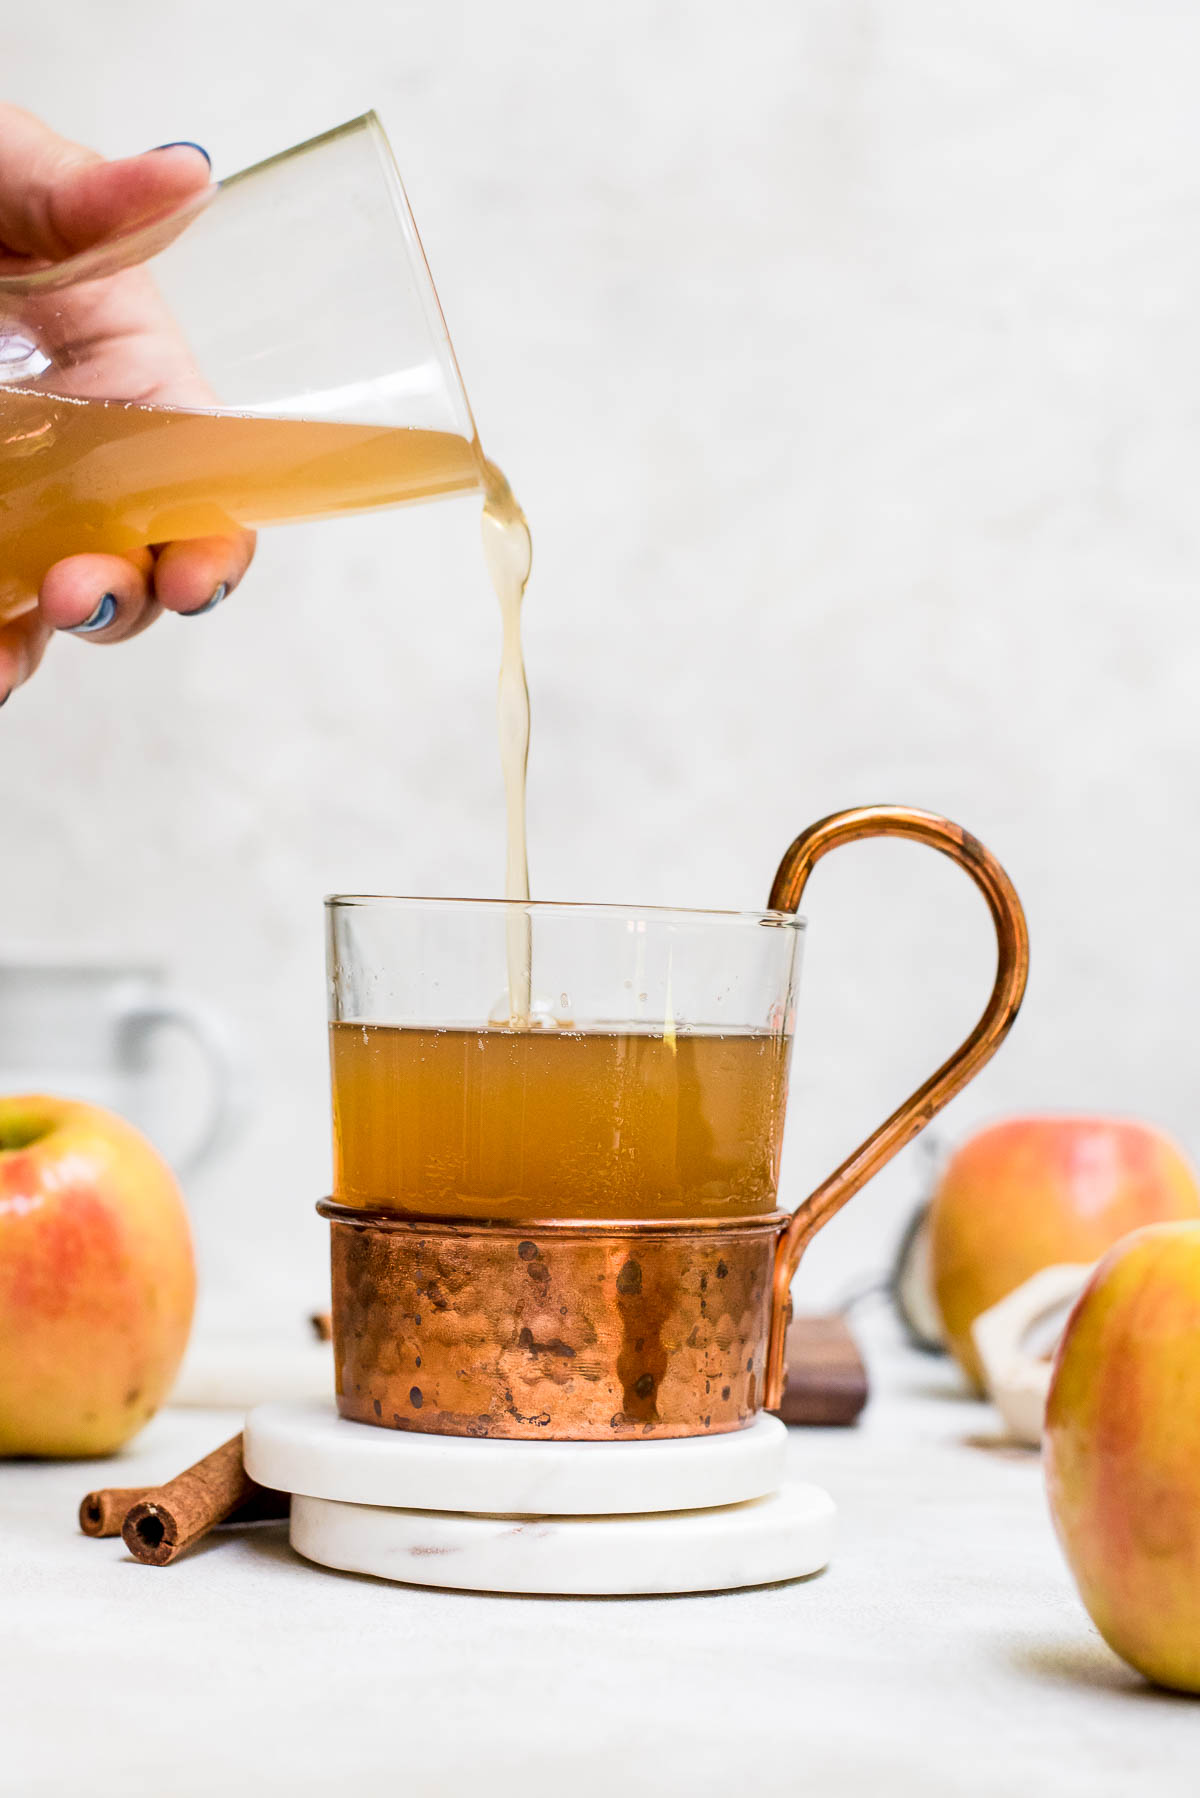 warm homemade apple cider in a glass and copper mug on white marble coaster